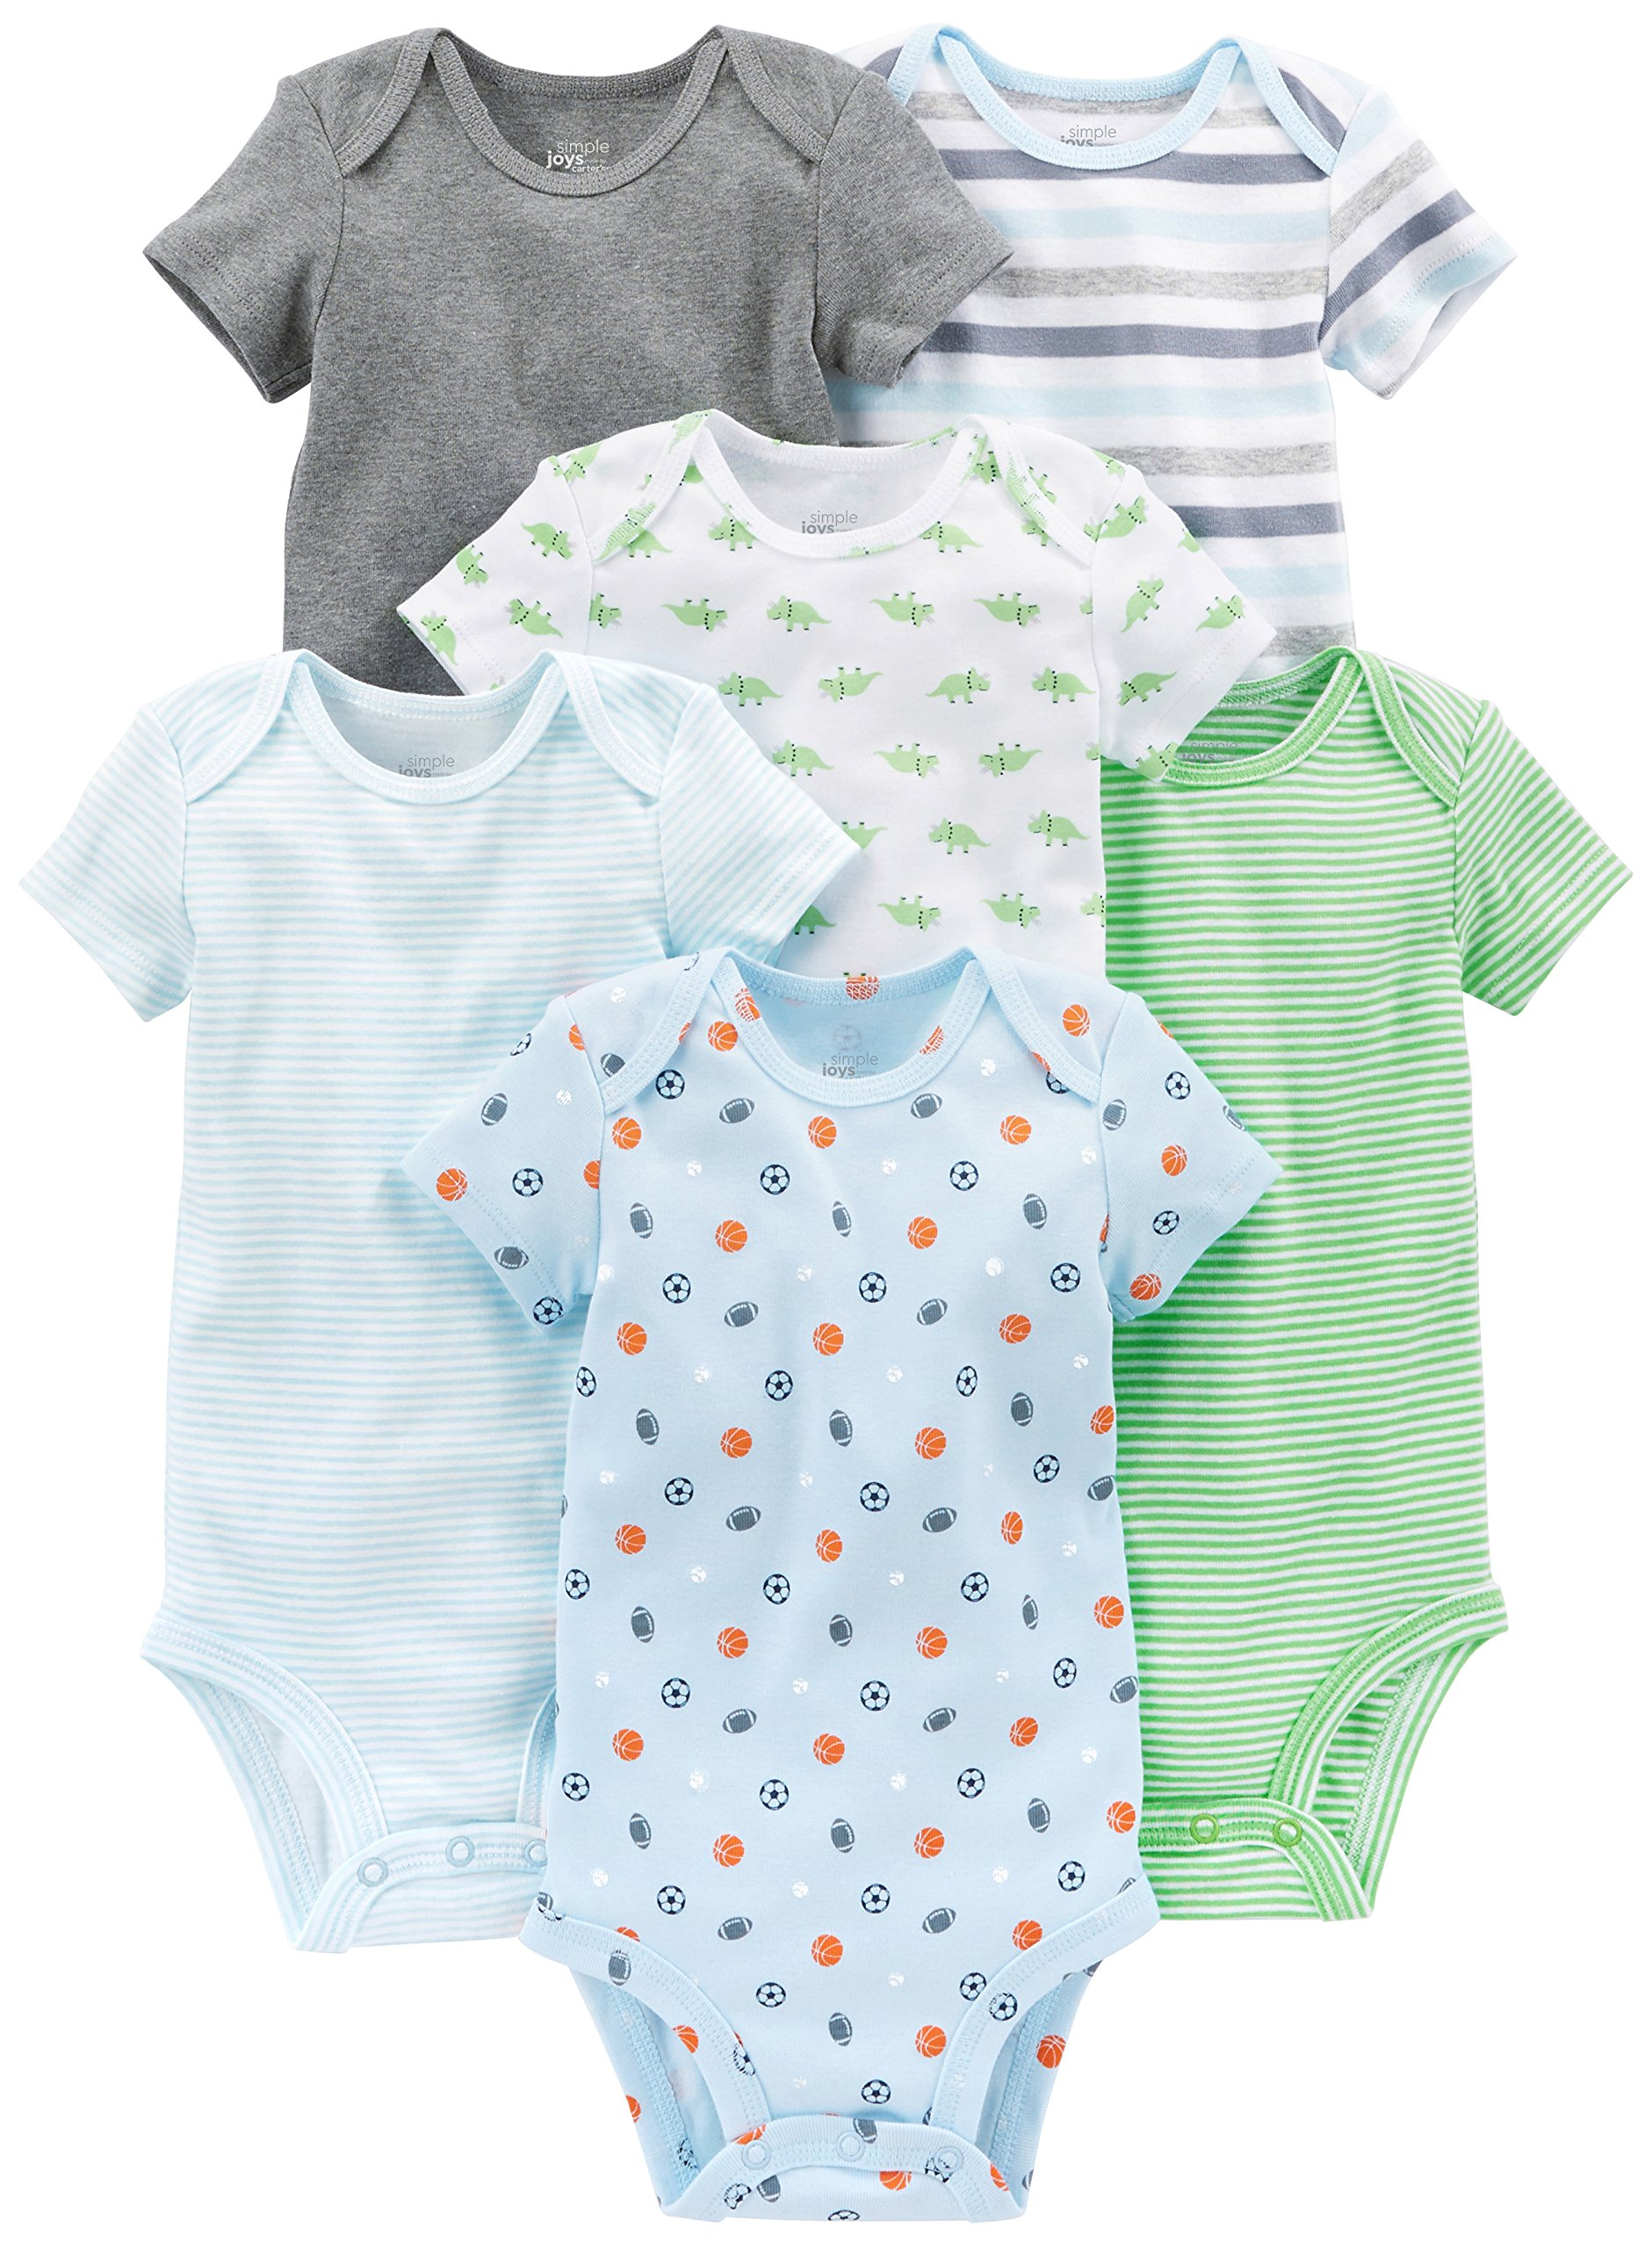 Simple Joys by Carter's Baby Boys 6-Pack Short-Sleeve Bodysuit, Blue/Grey, 0-3 Months by Simple Joys by Carter's